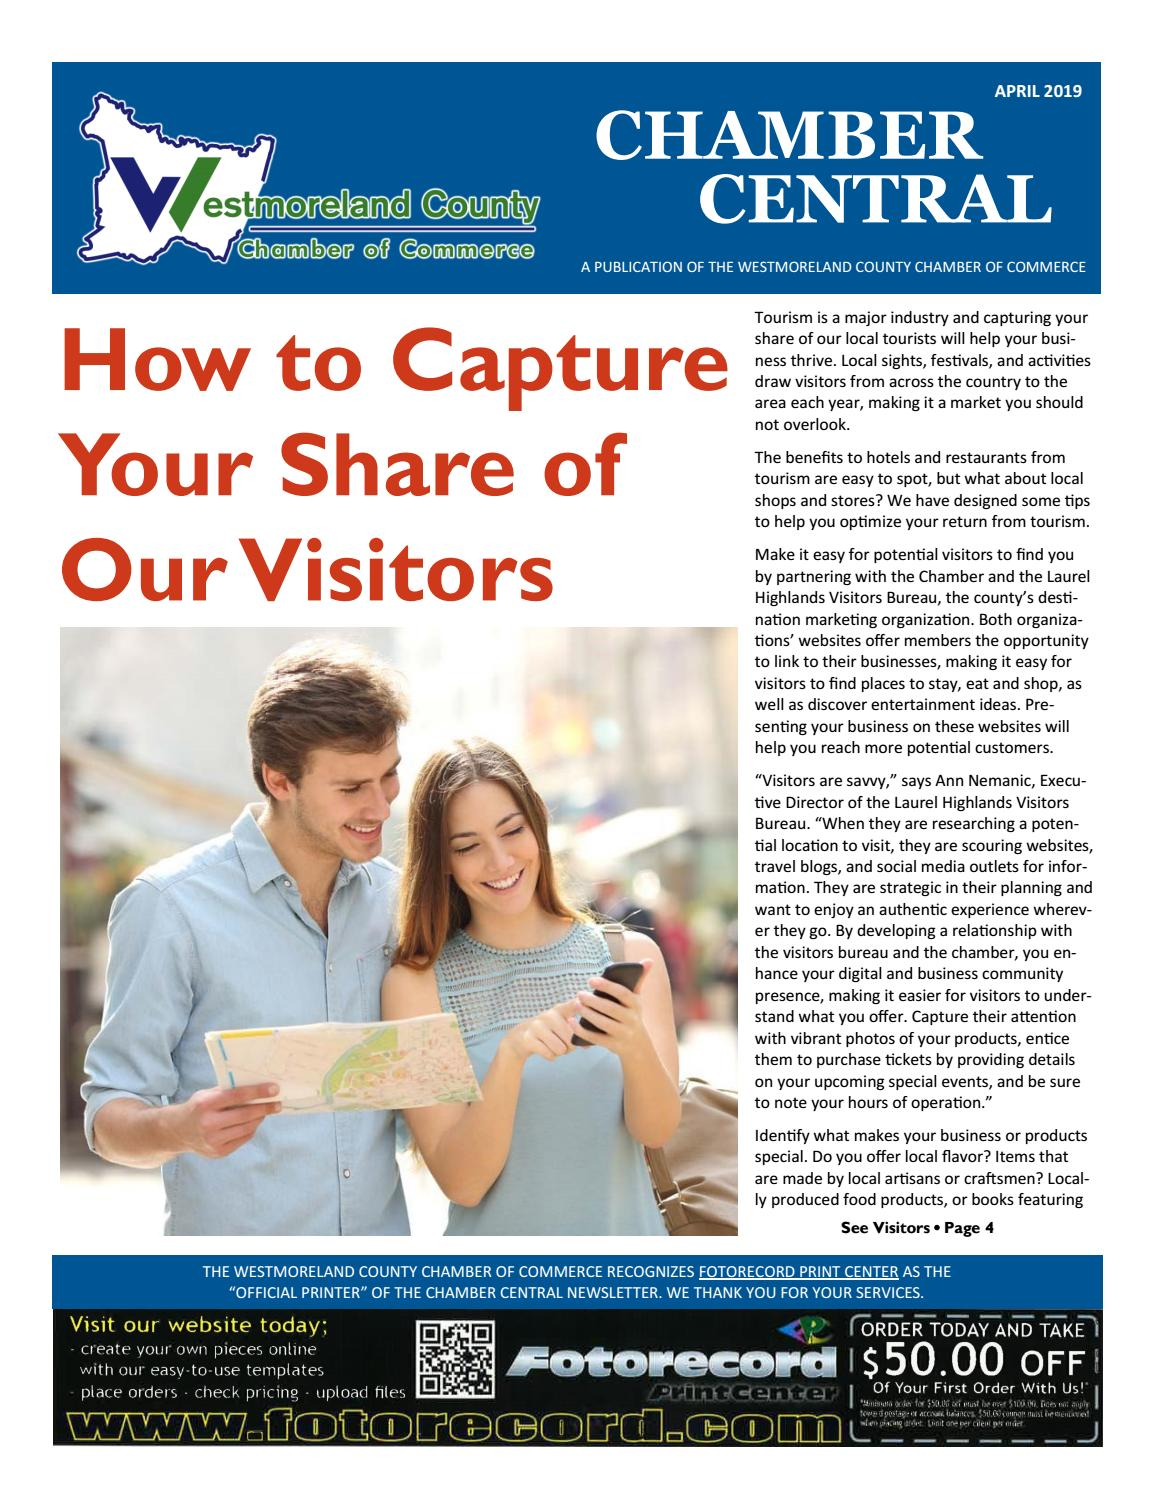 Chamber Central Newsletter April 2019 by Westmoreland County